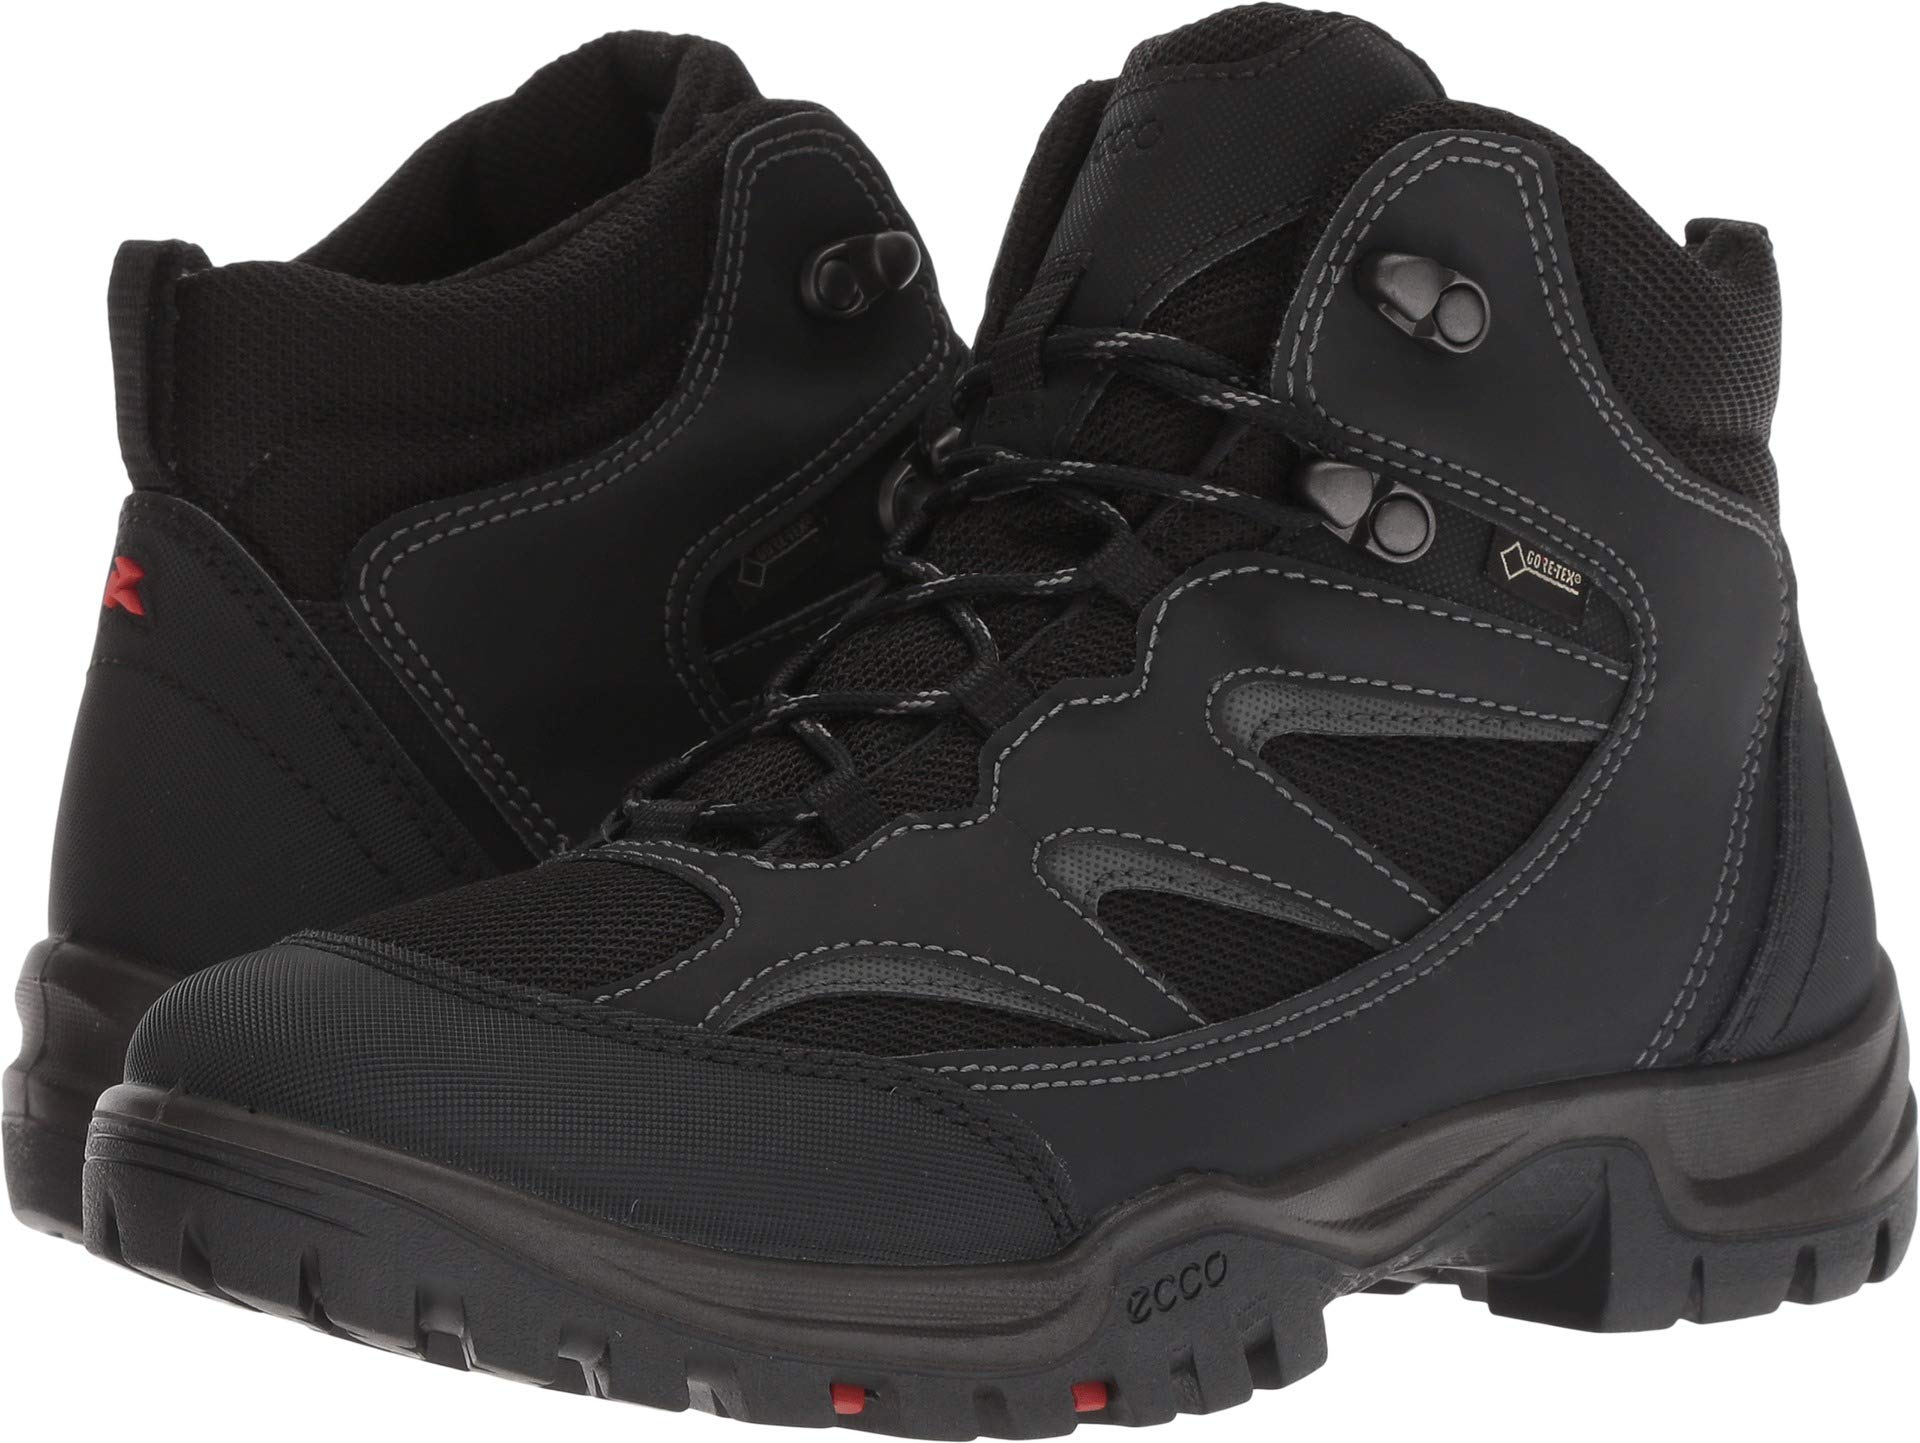 ECCO Women's Xpedition III Gore-TEX High Backpacking Boot, Black, 40 M EU (9-9.5 US) by ECCO